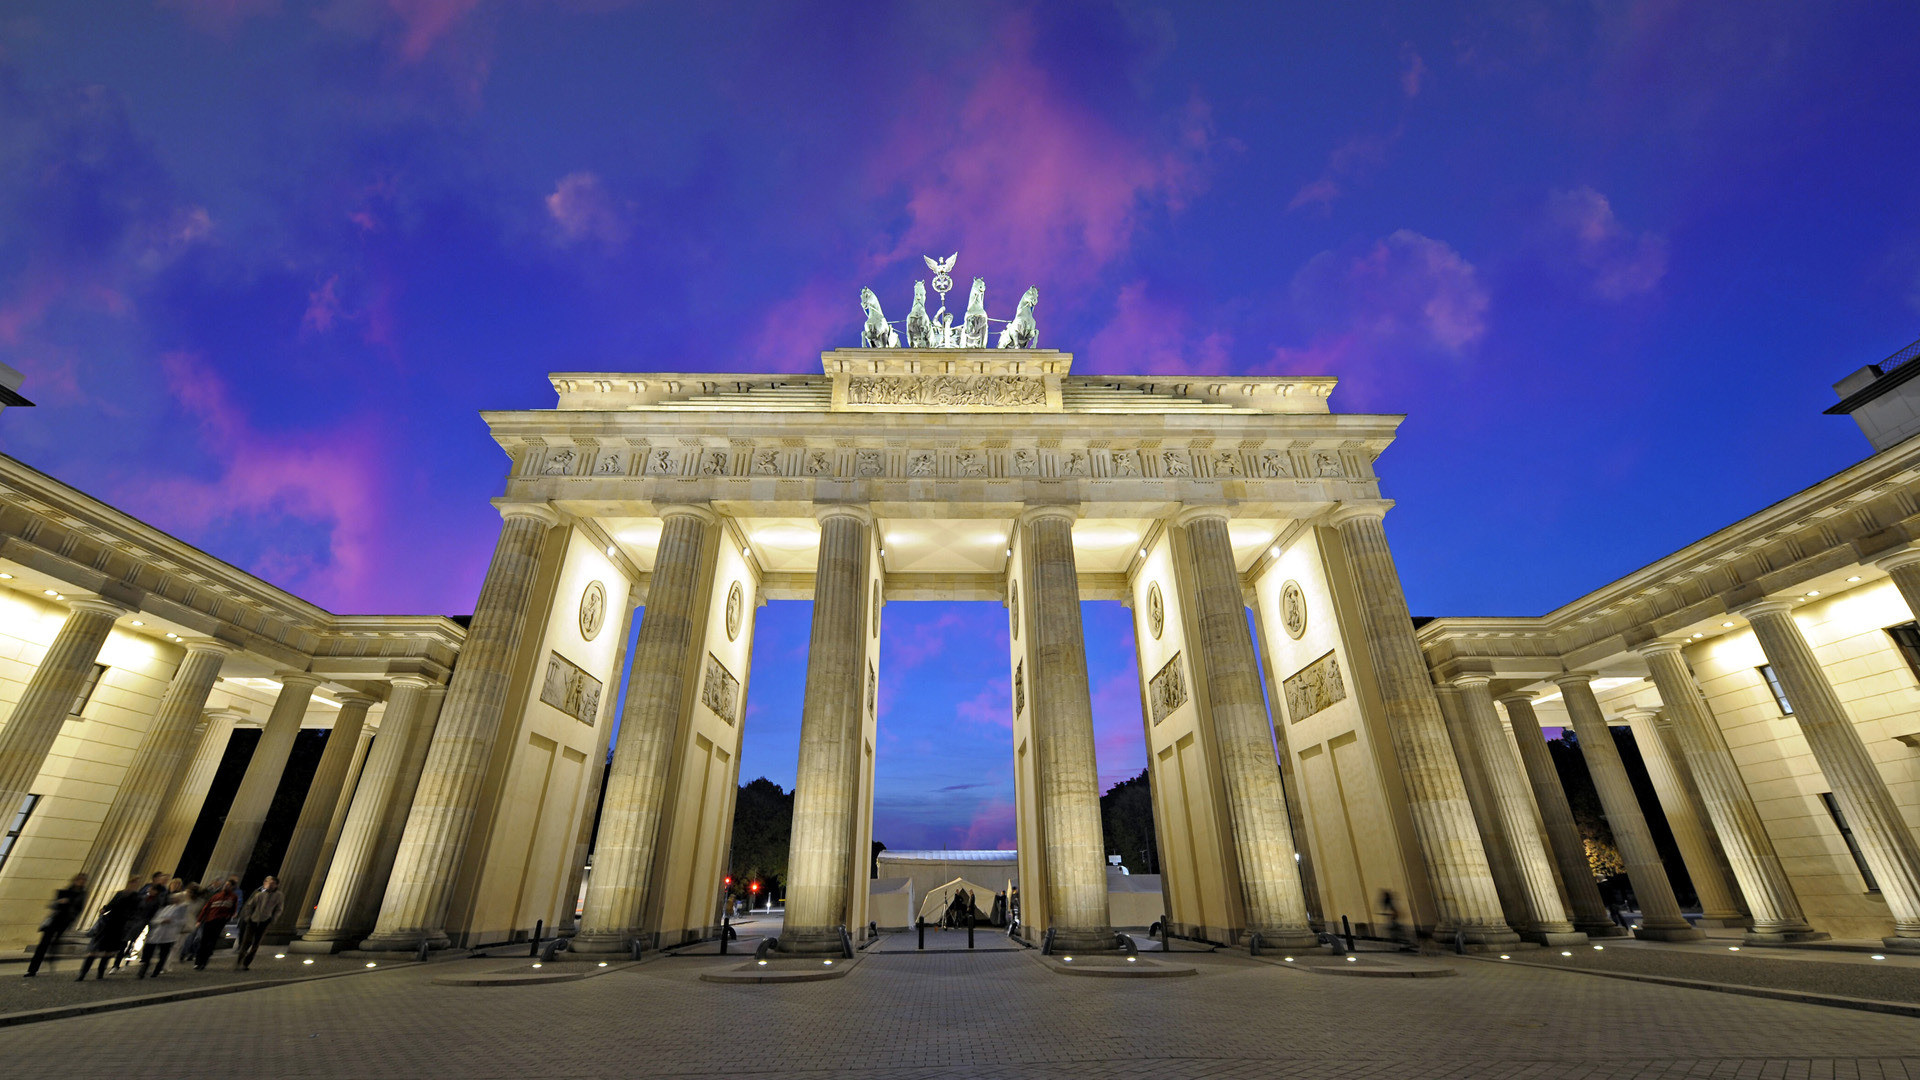 Res: 1920x1080, Menschengemacht - Brandenburg Gate Berlin Wallpaper